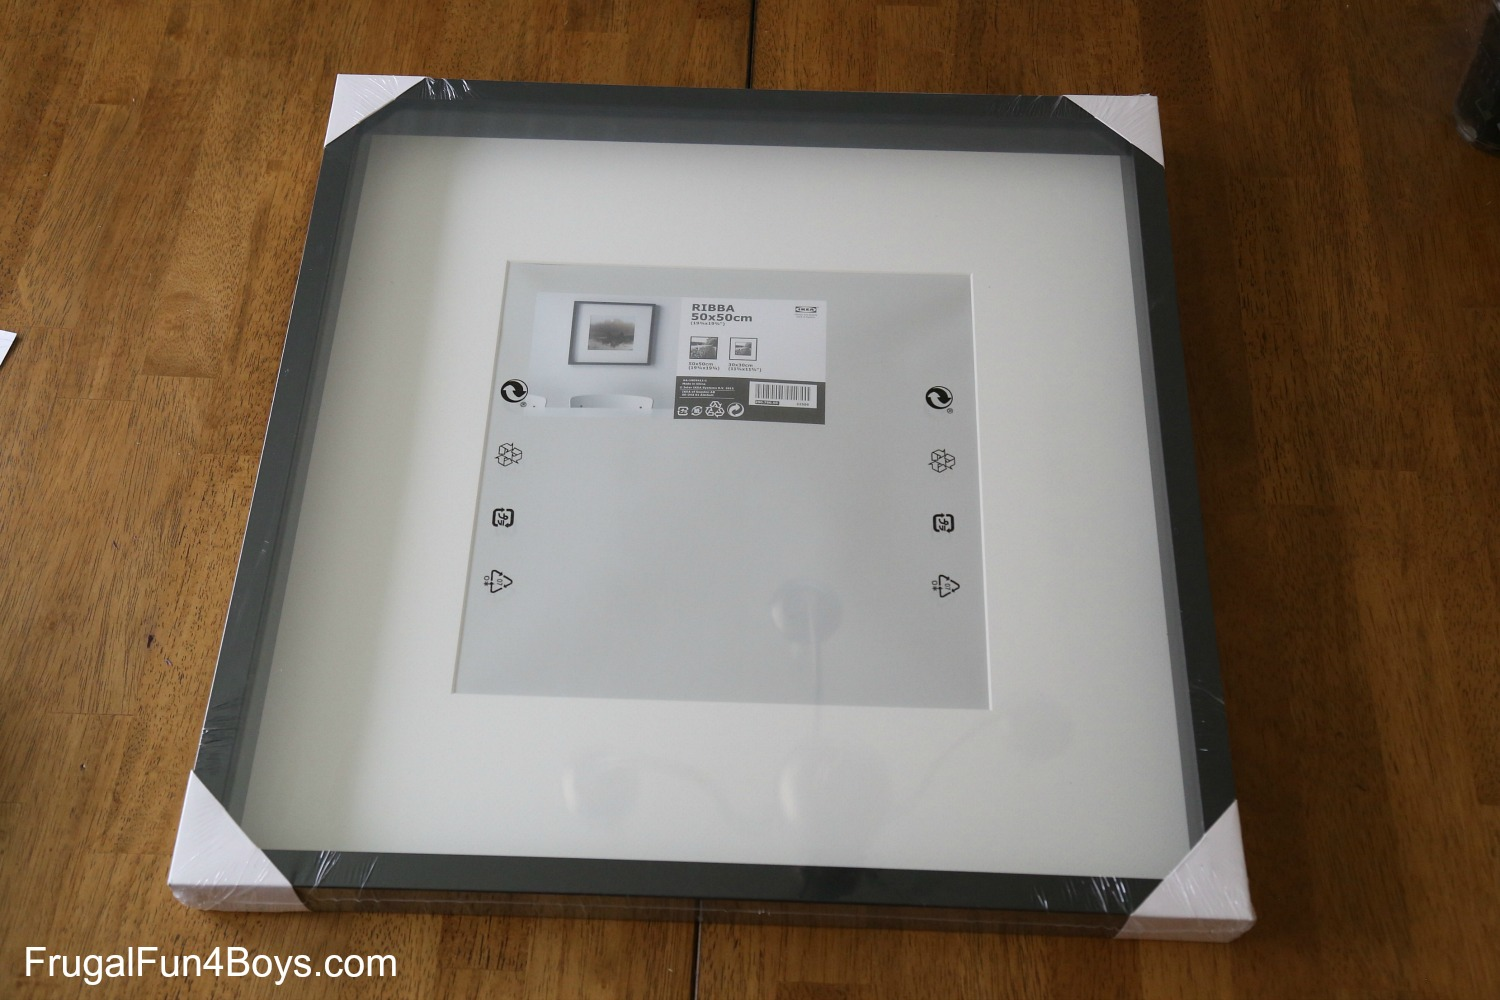 Outstanding Ribba Ikea Frame Image Collection - Picture Frame Ideas ...